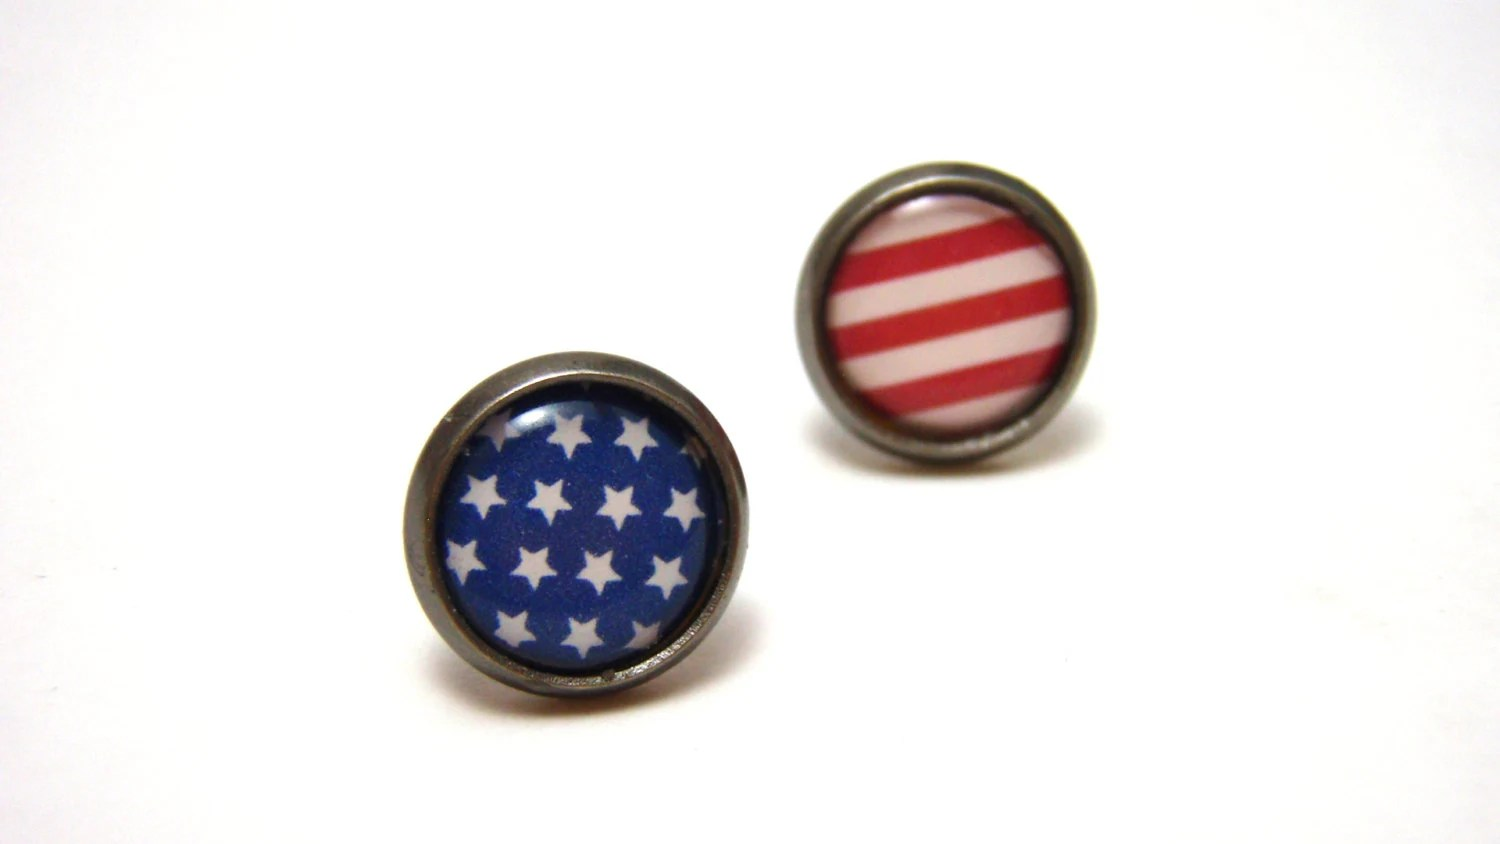 American Flag Studs - Red White and Blue Fourth of July Independence Day themed earrings on SMALL 10mm circular gunmetal posts - Patriotic - NightsRequiem